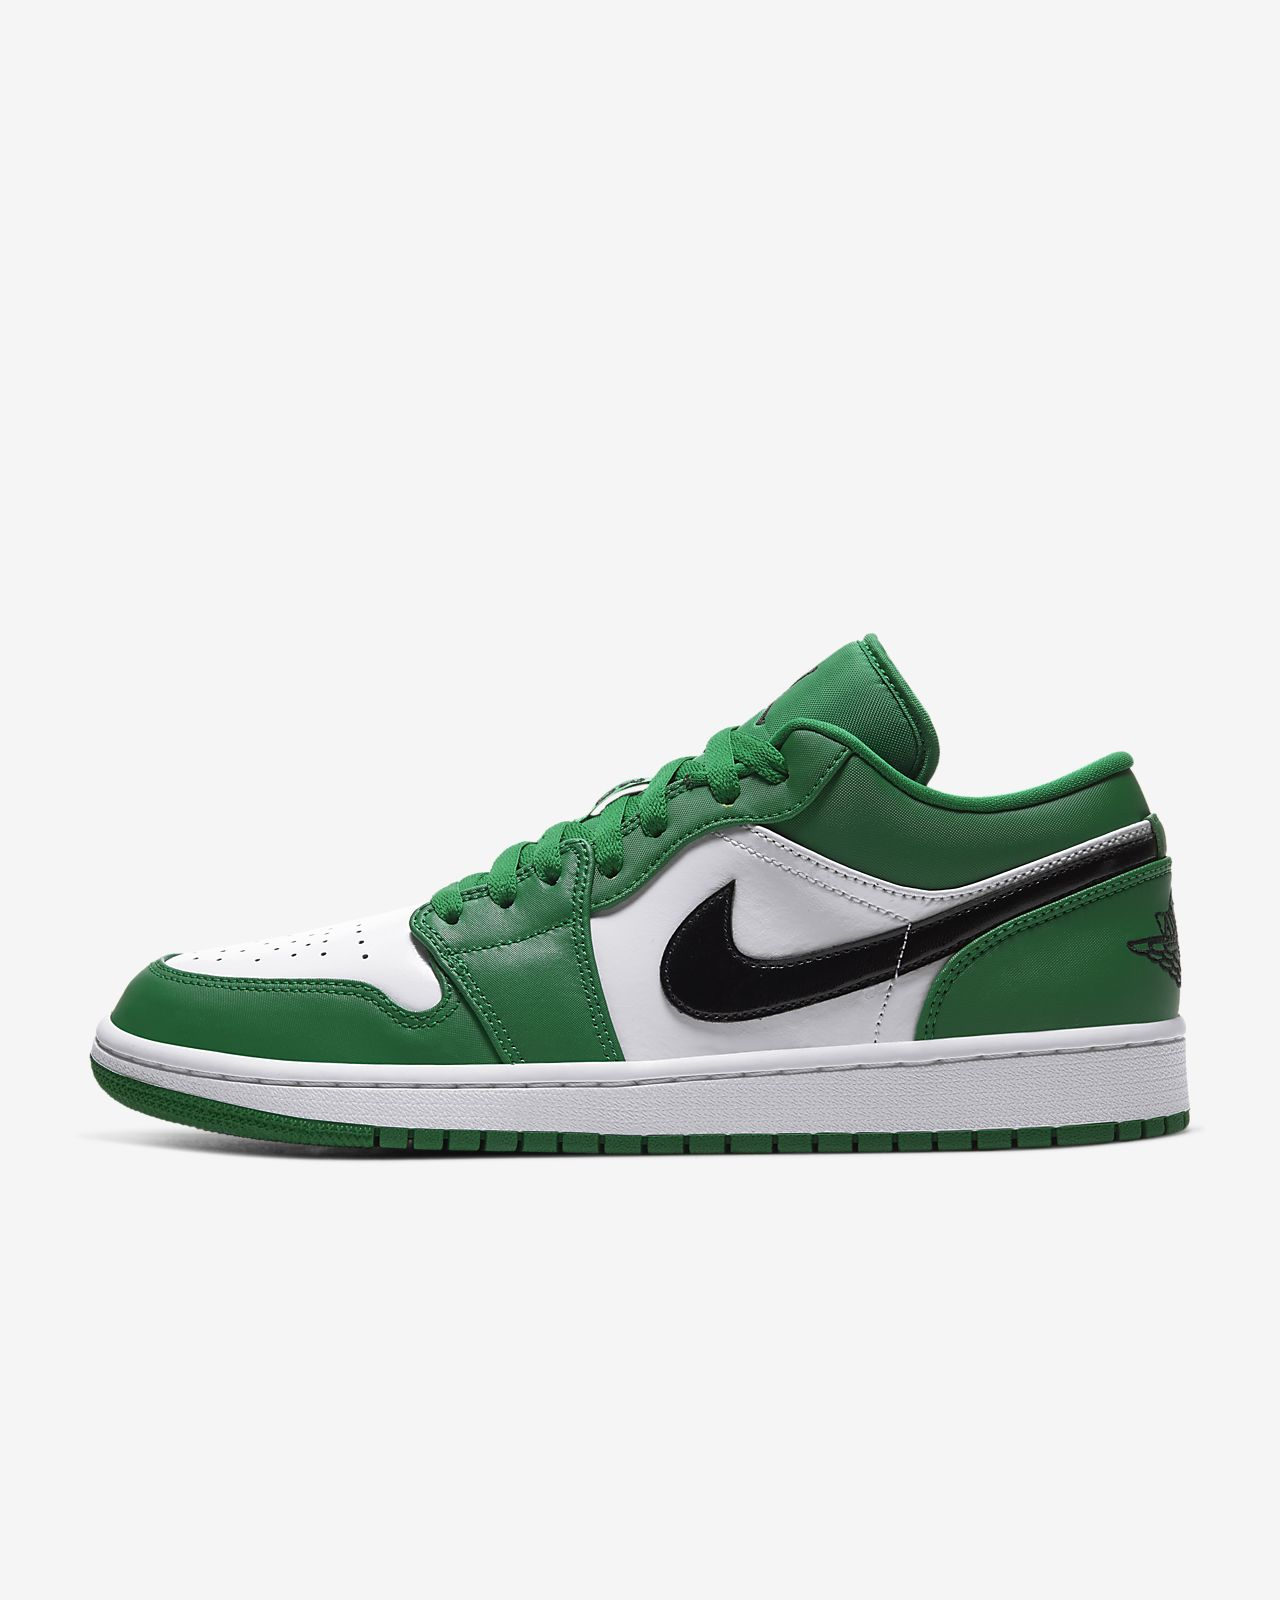 Nike Air Force 1 Low Neutral Grey White Pine Green